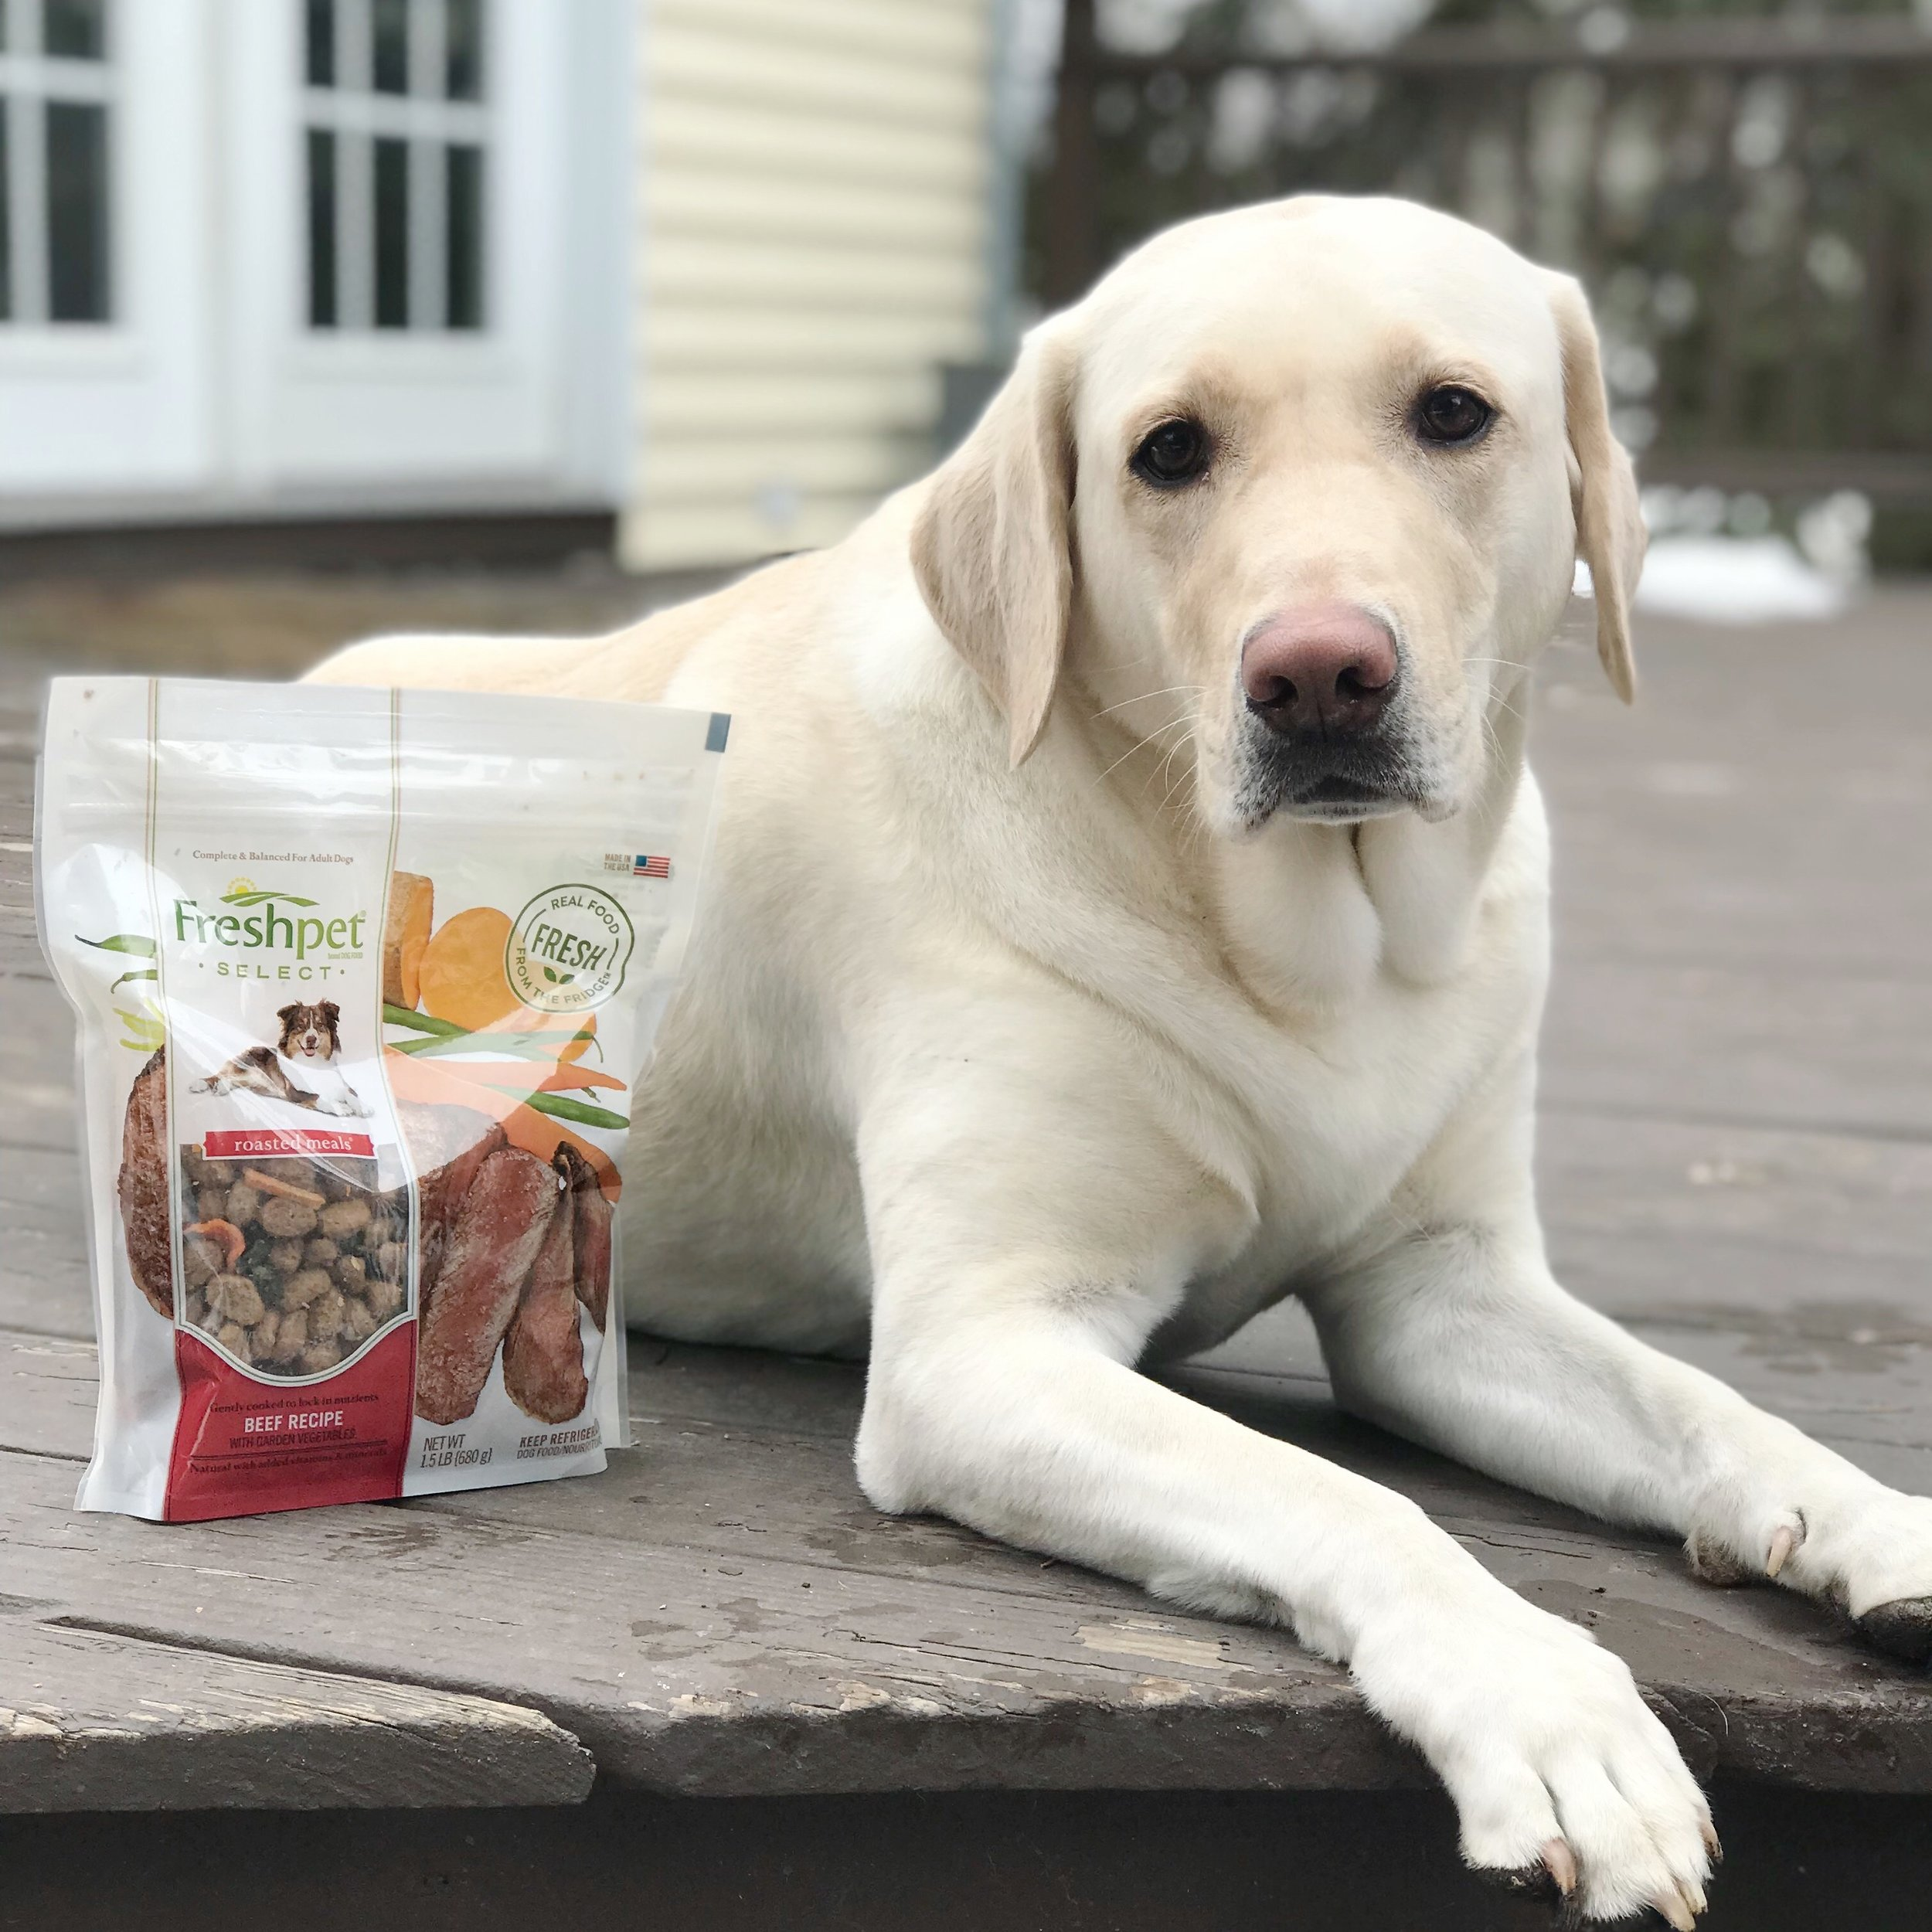 Thanks to Freshpet for sponsoring this post. Check out      Freshpet      refrigerated pet food, made in small batches with fresh ingredients and no artificial preservatives, for a difference you can see and your pet will feel.